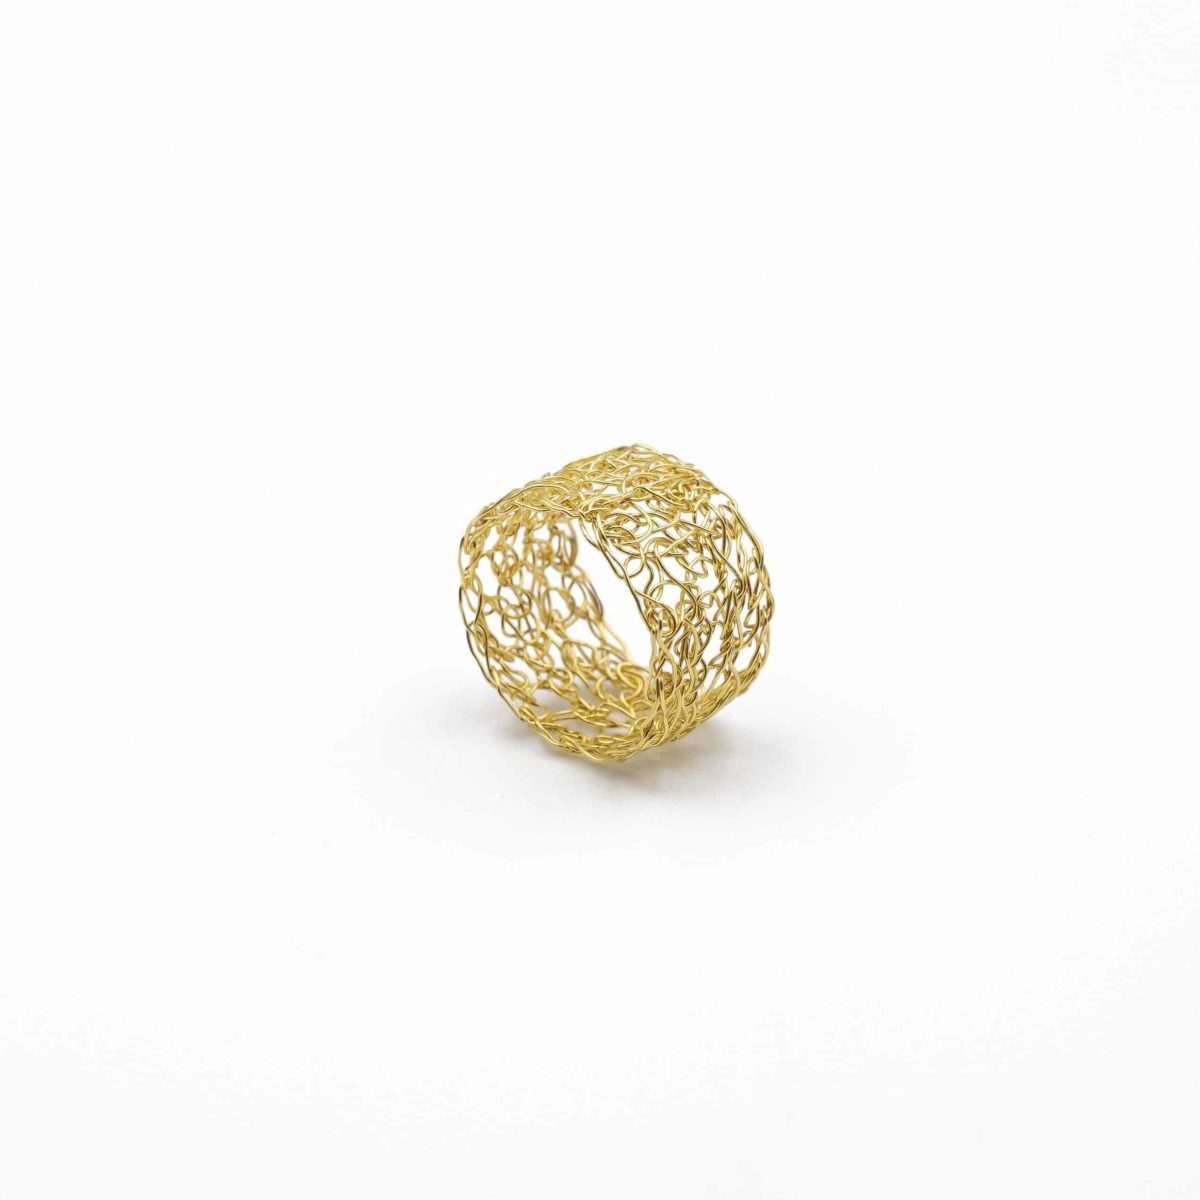 adjustable 18ct yellow gold band ring